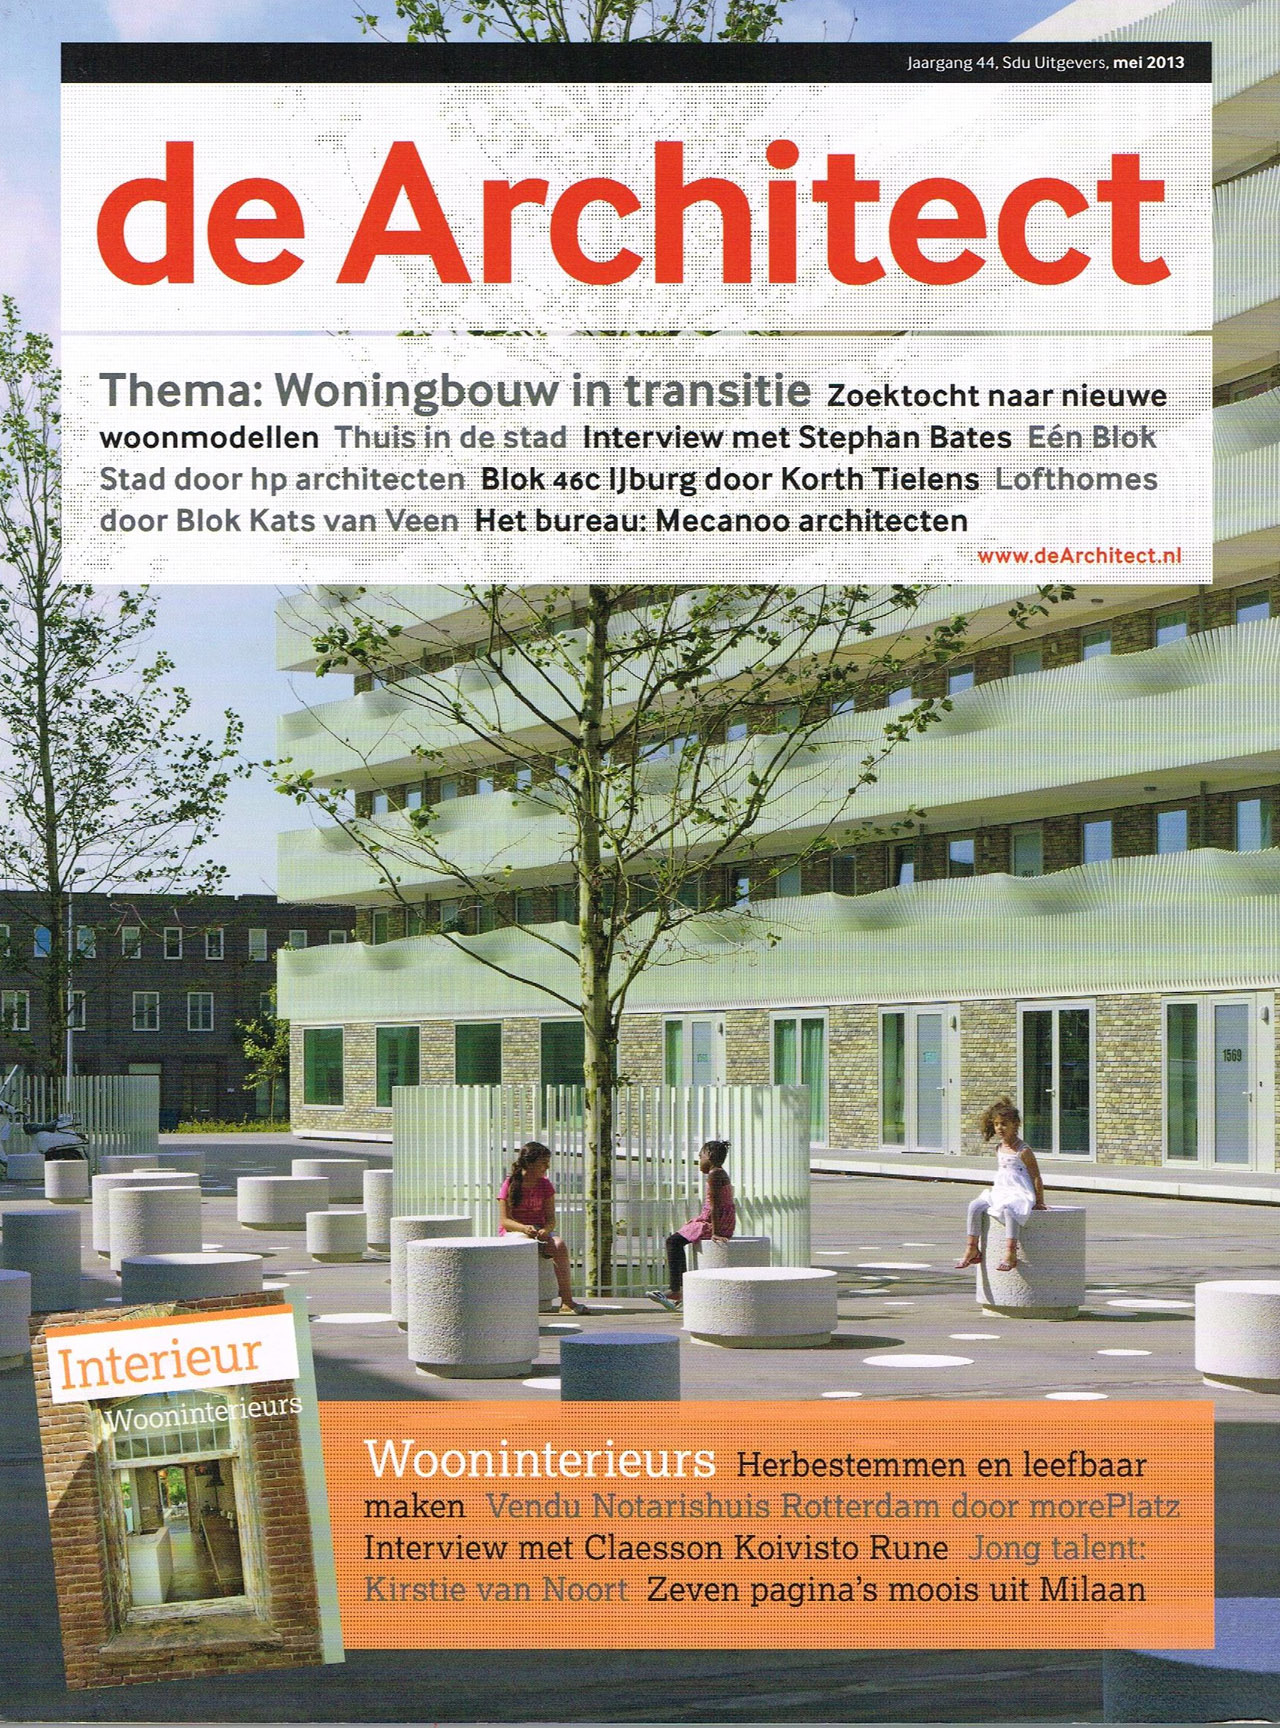 voorkant de Architect